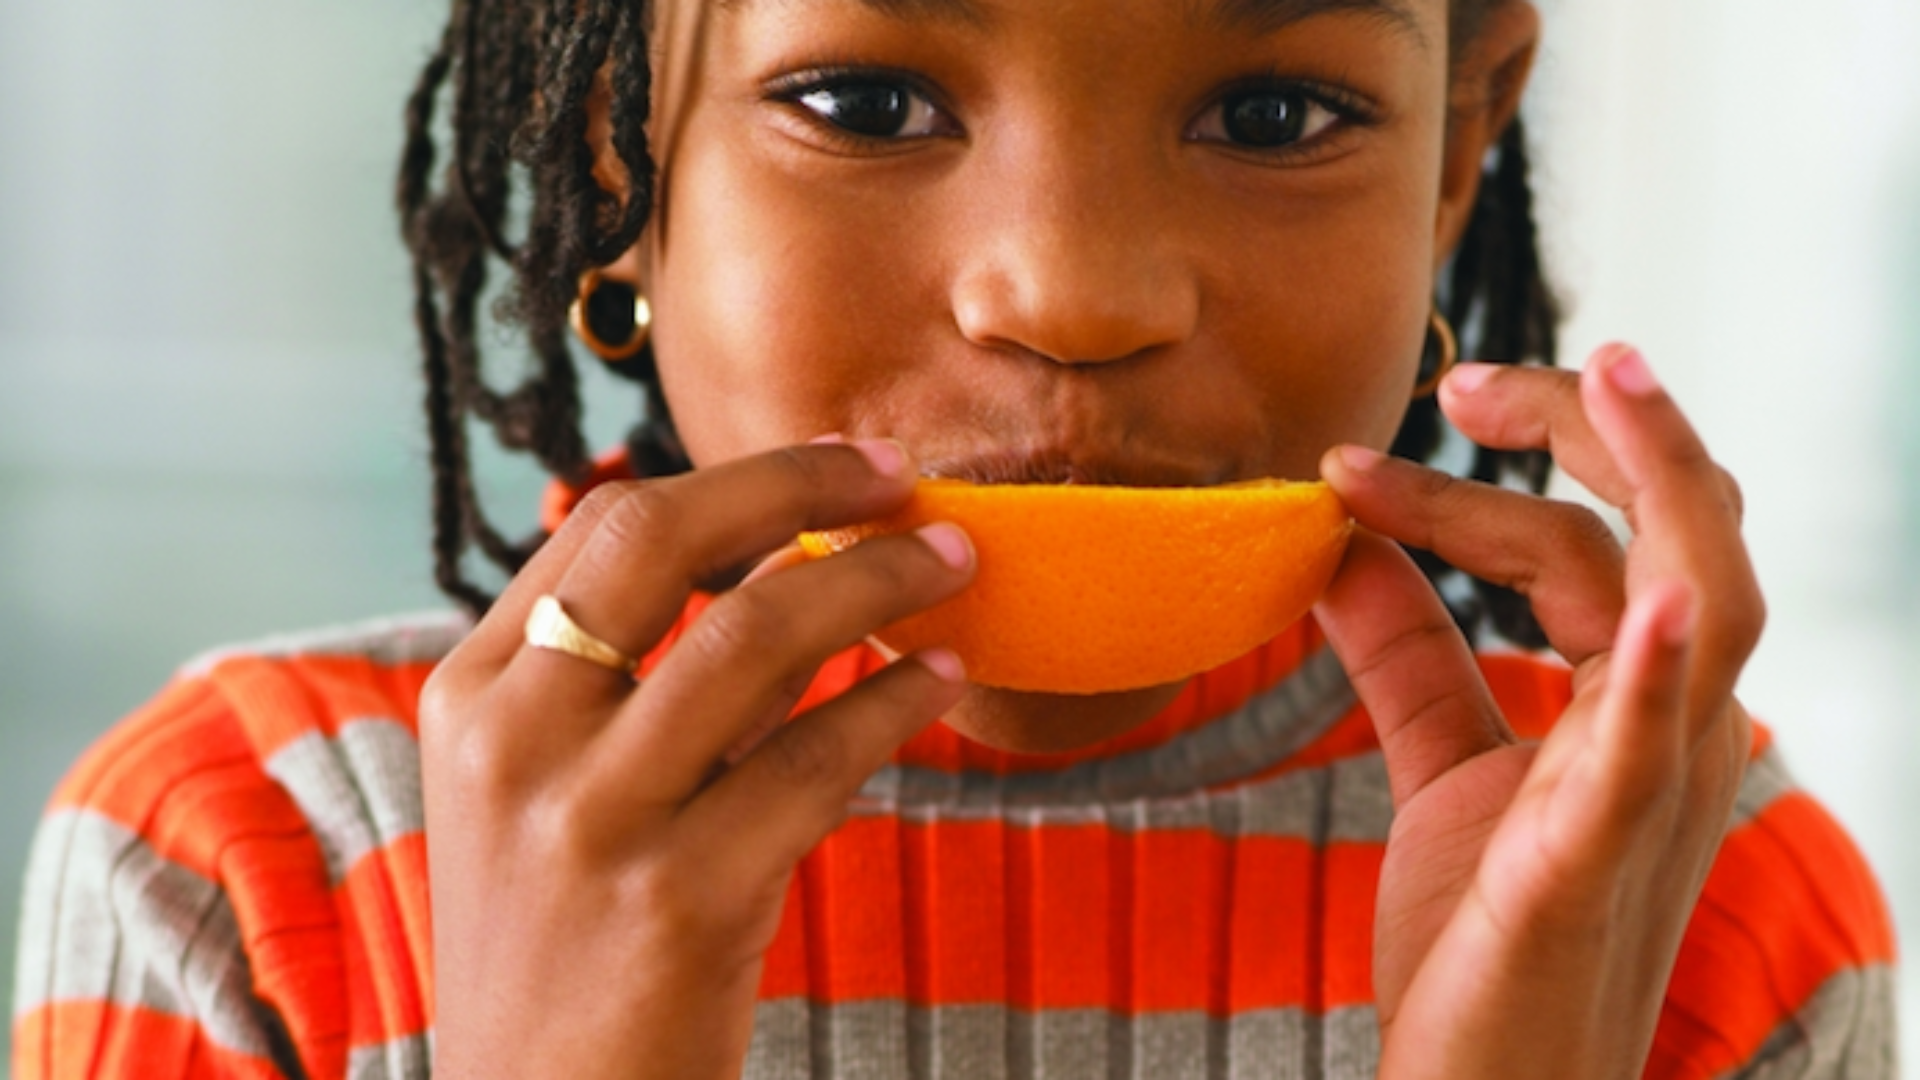 Girl eating orange